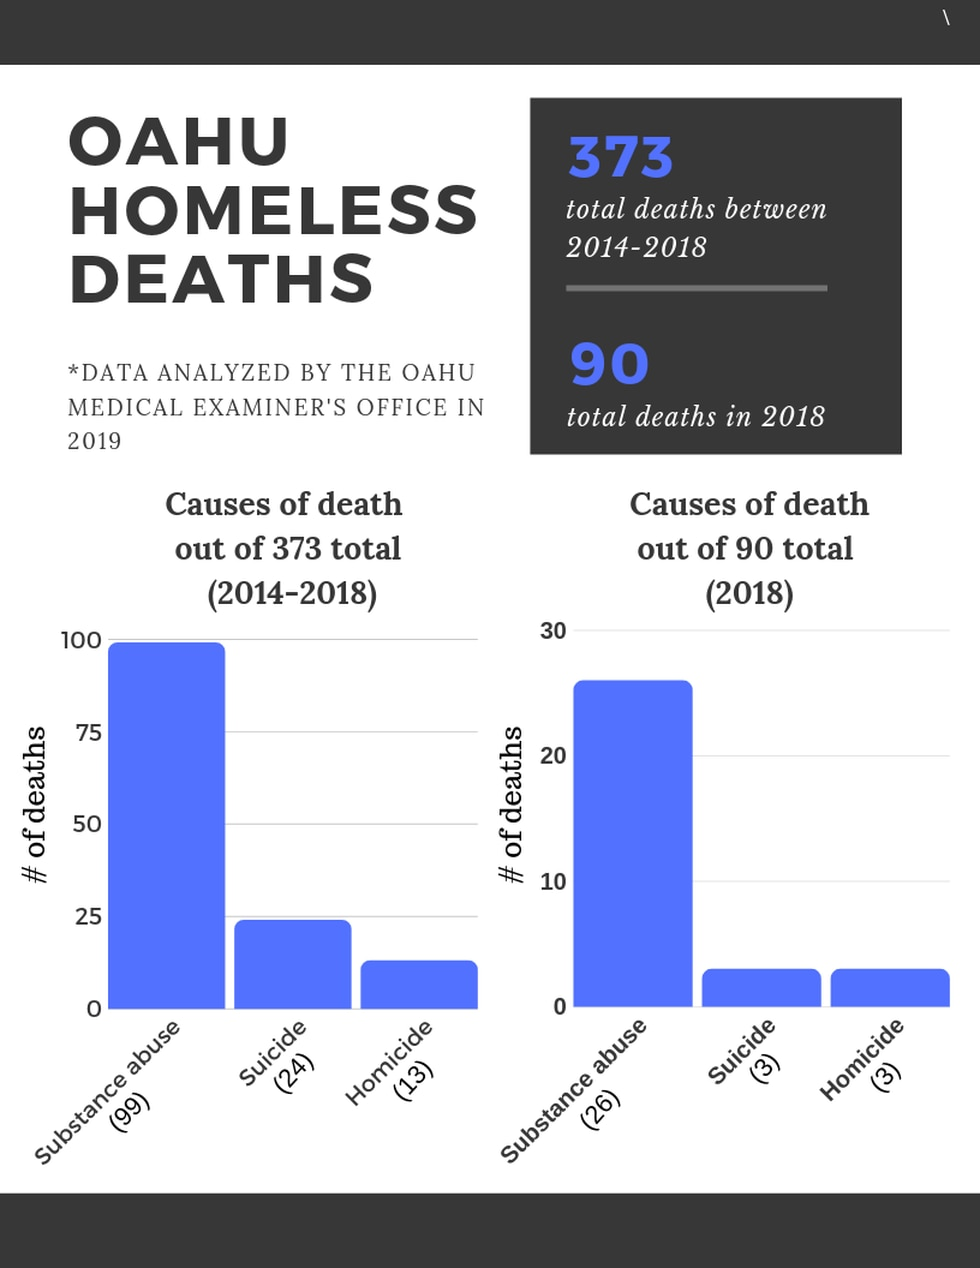 Number of homeless deaths over the past five years in O'ahu.